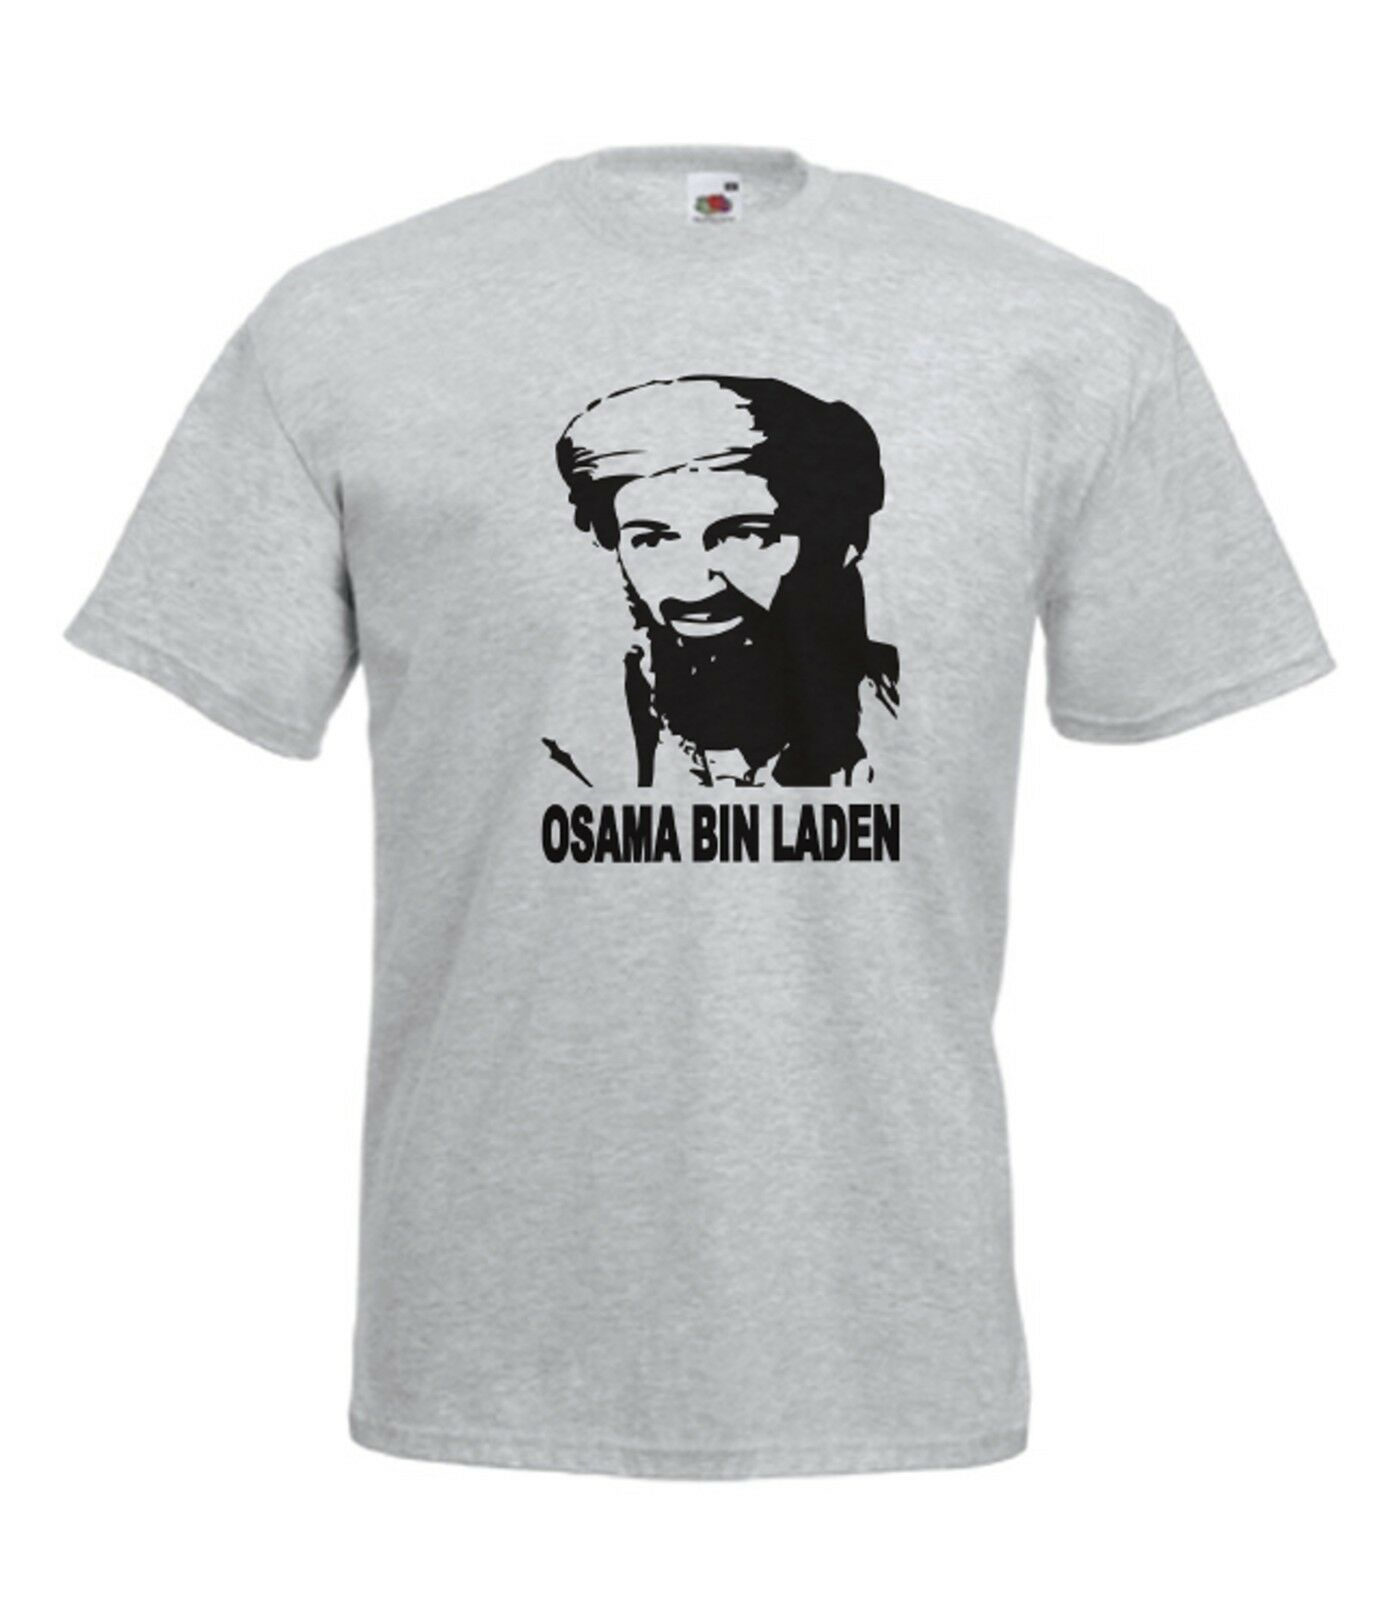 Bin Laden Funny Usa Army Xmas Birthday Gift Idea Mens Womens Adult T Shirt Top